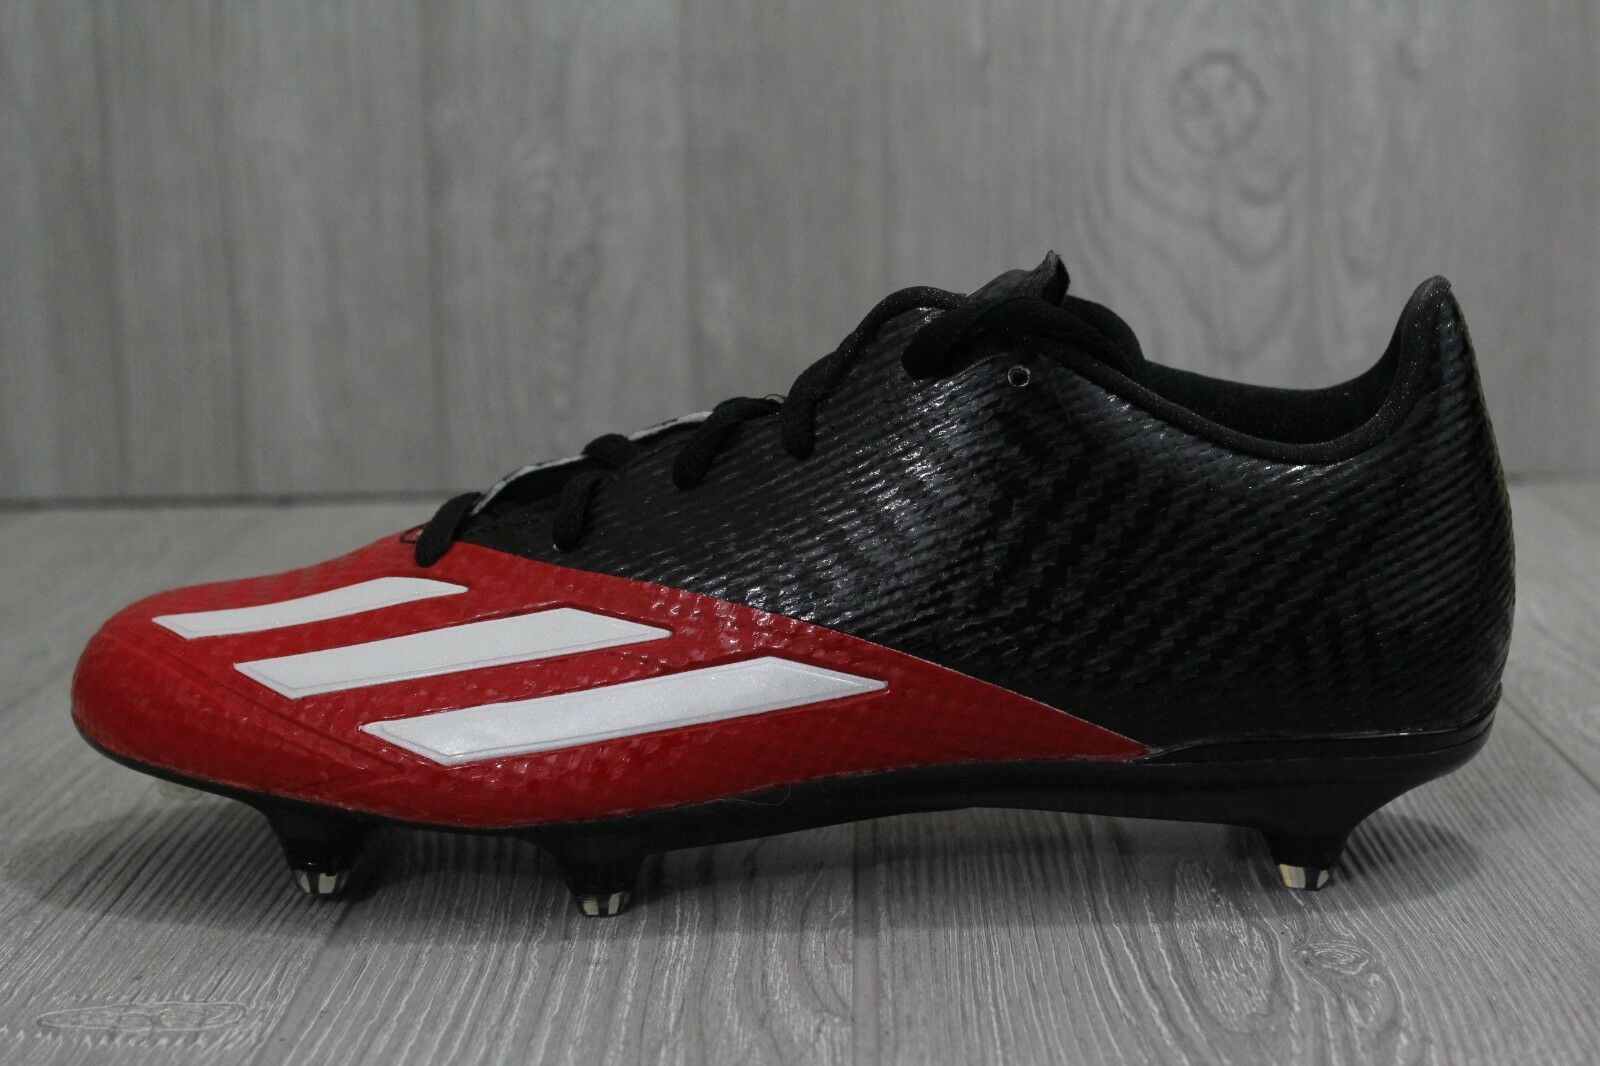 30 RARE Adidas Adizero 5 Star 5.0 Low Football Red Cleats Screw In AH1333 11